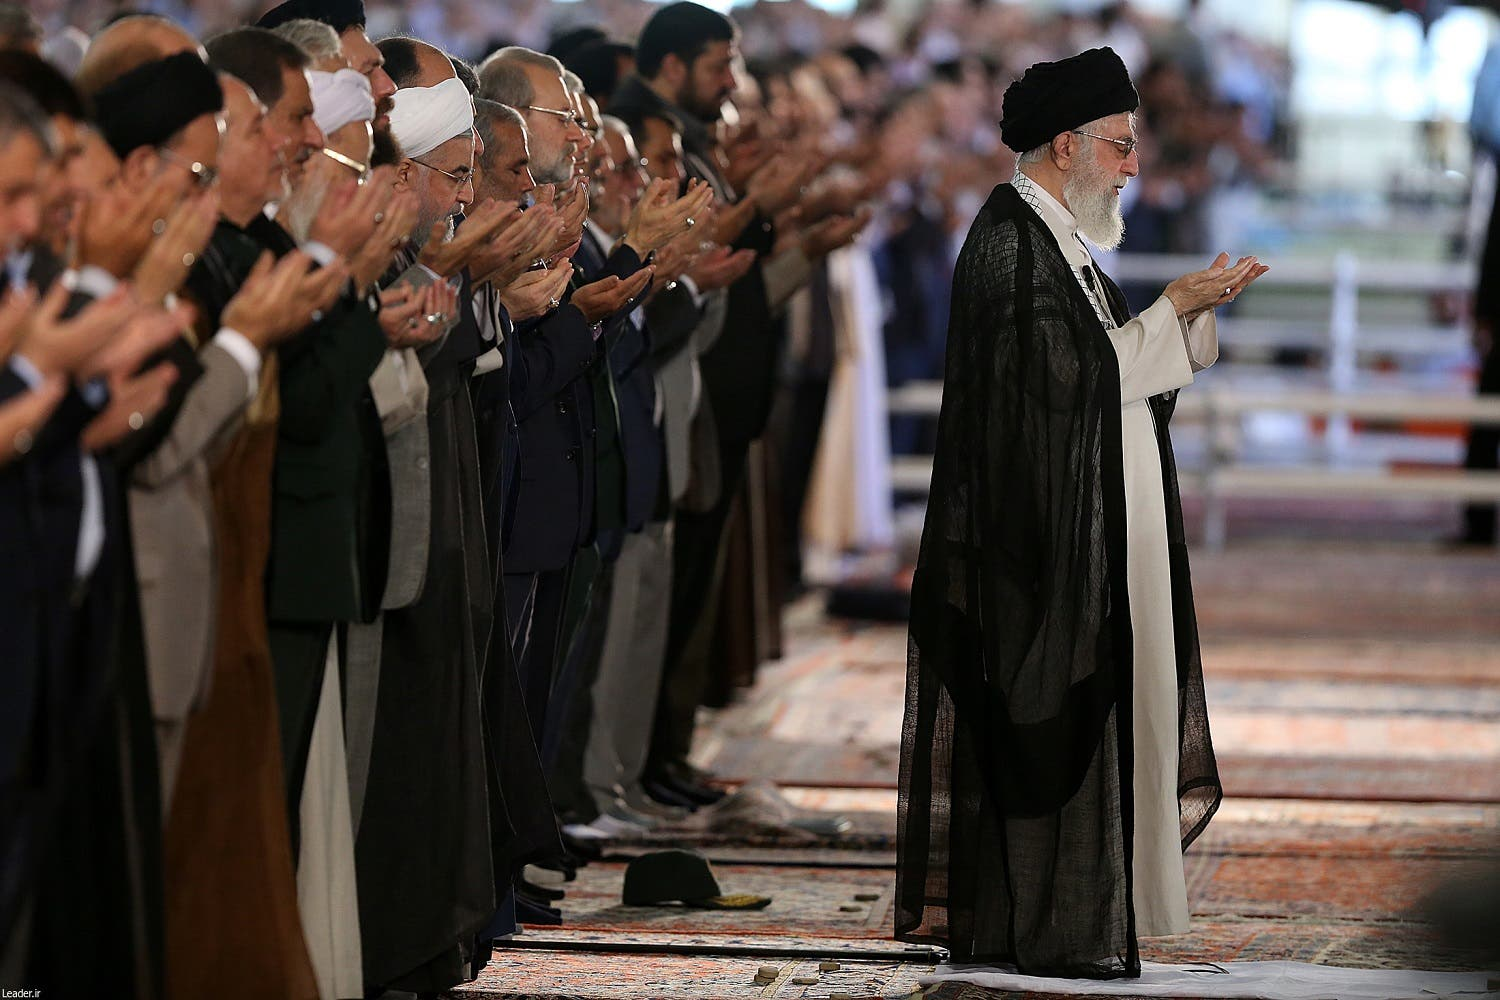 A handout picture released by the official website of the Iranian supreme leader Ayatollah Ali Khamenei shows him (R) leading the Eid al-Fitr prayers at the Imam Khomeini grand mosque in the capital Tehran on June 26, 2017. (AFP)